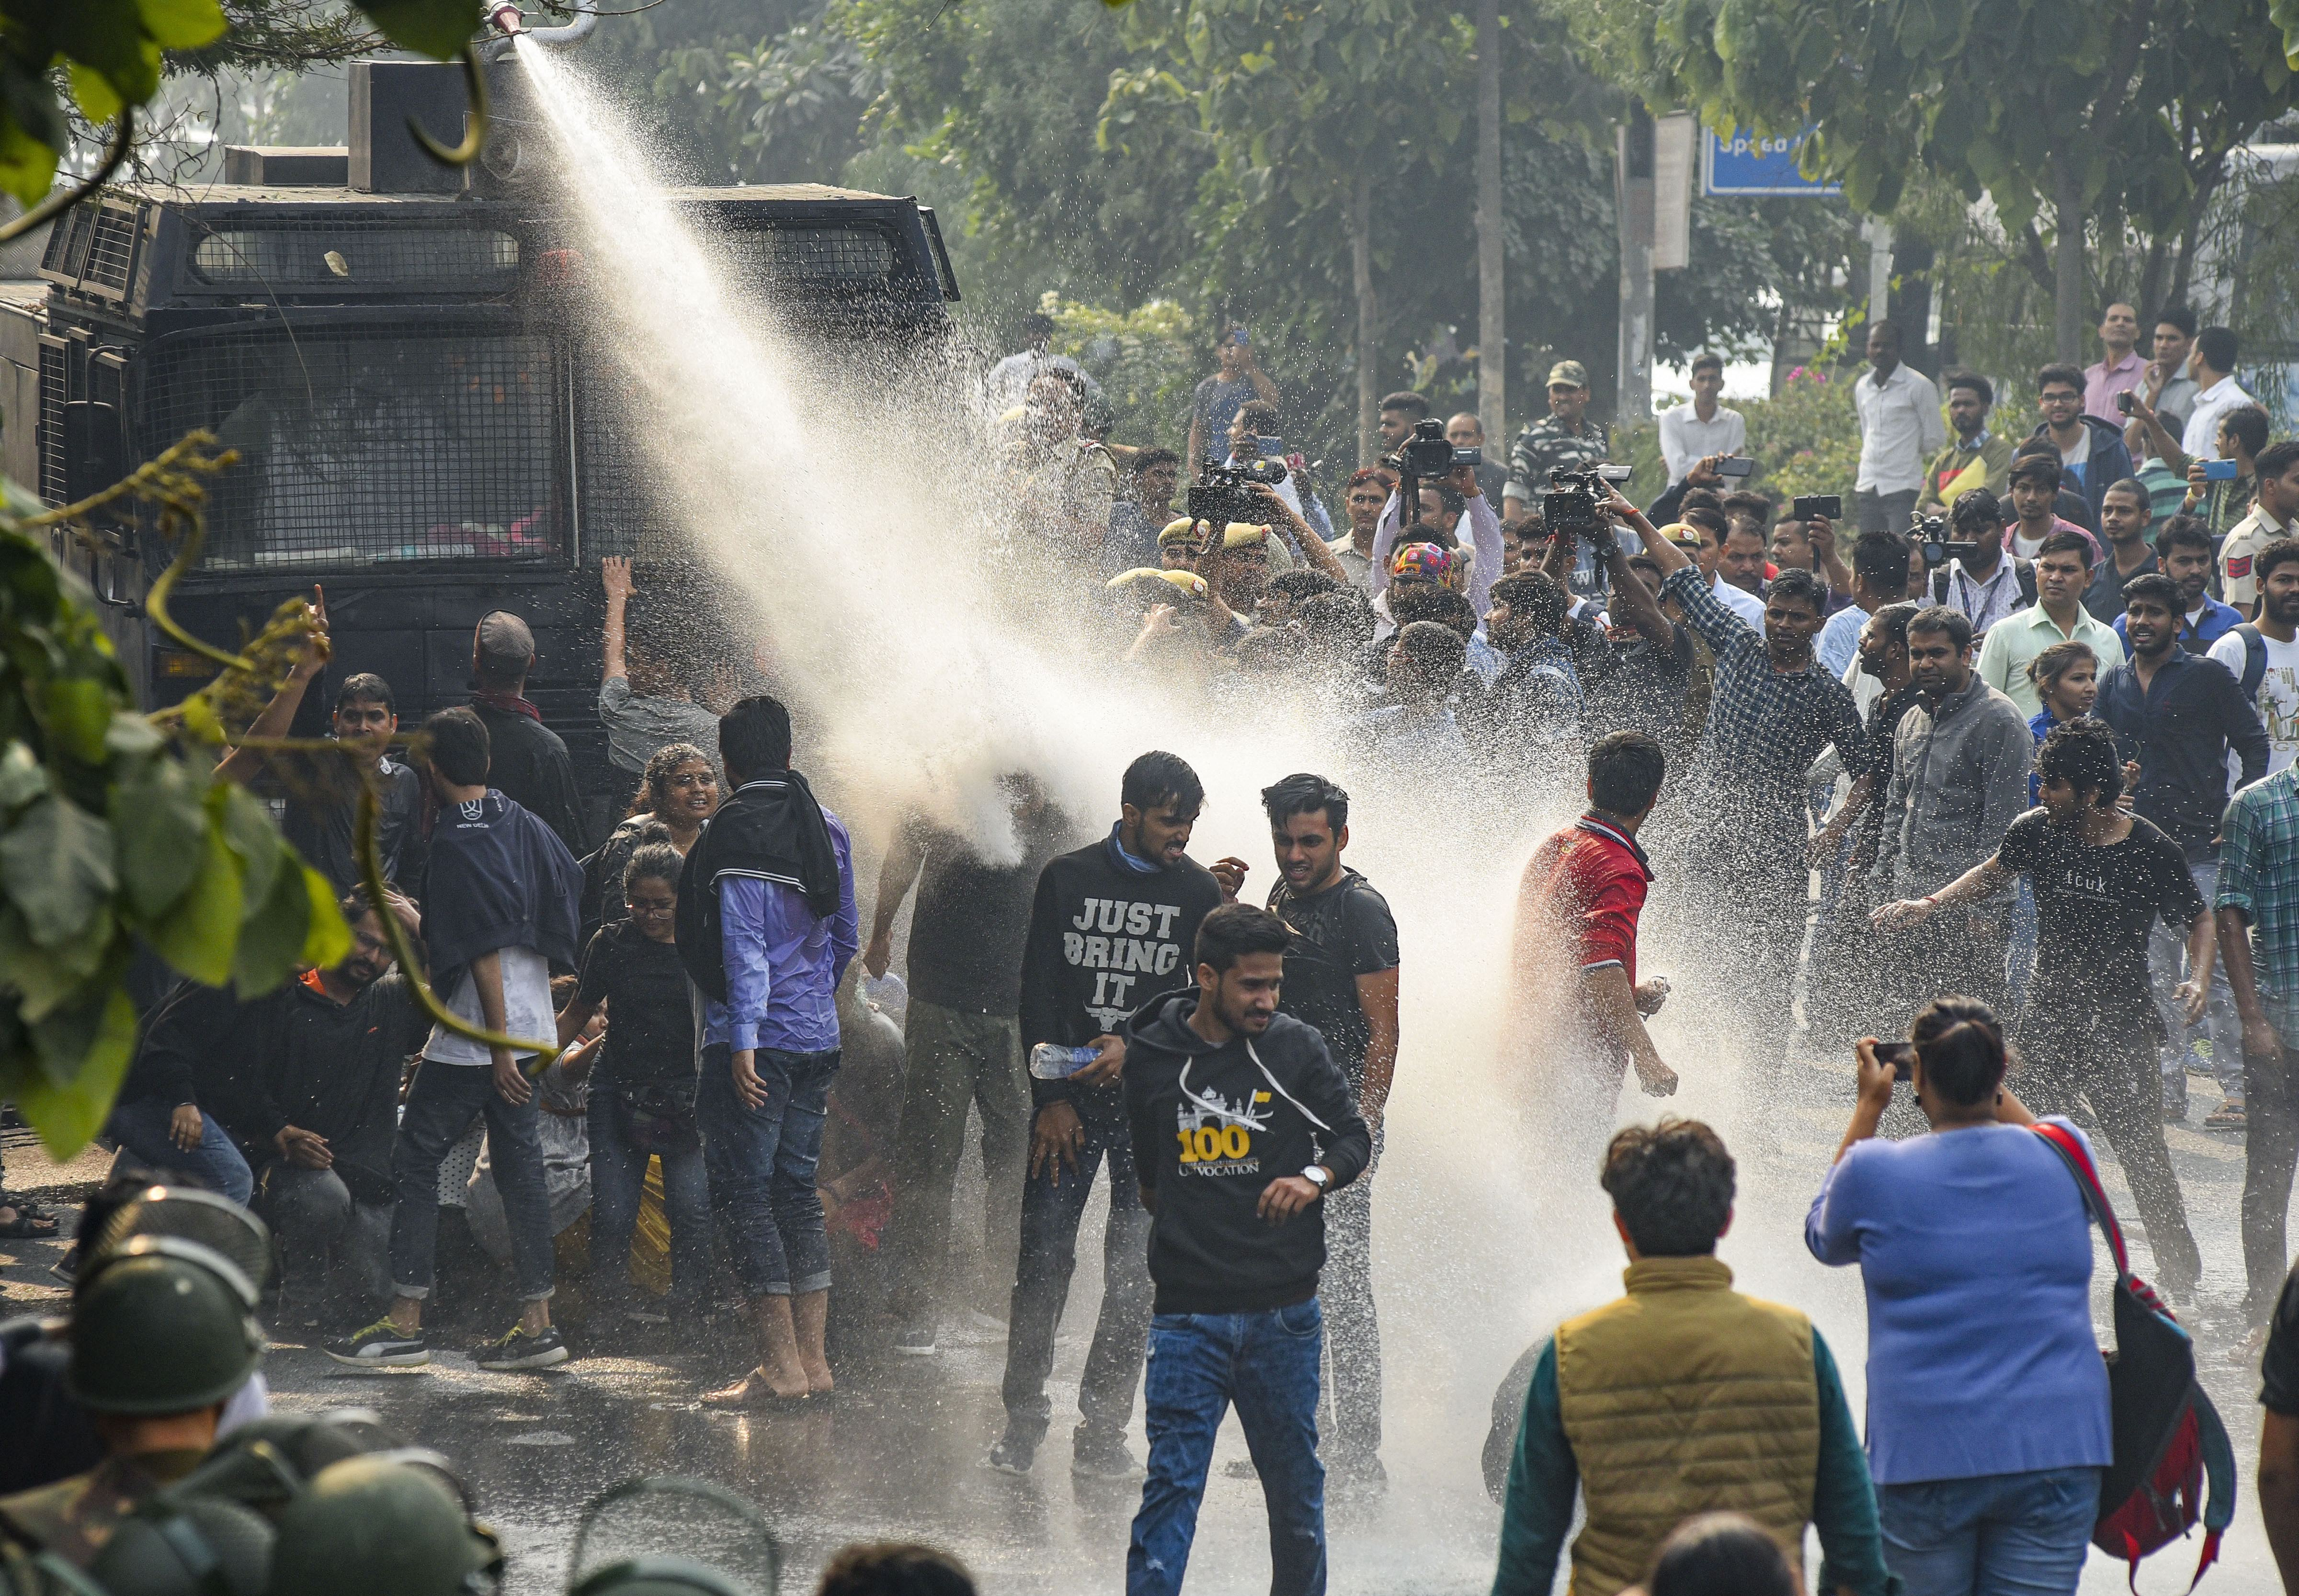 Police personnel use water cannon to disperse students of Jawaharlal Nehru University protesting against the administration's 'anti-students' policy, in New Delhi, Monday, November 11, 2019.